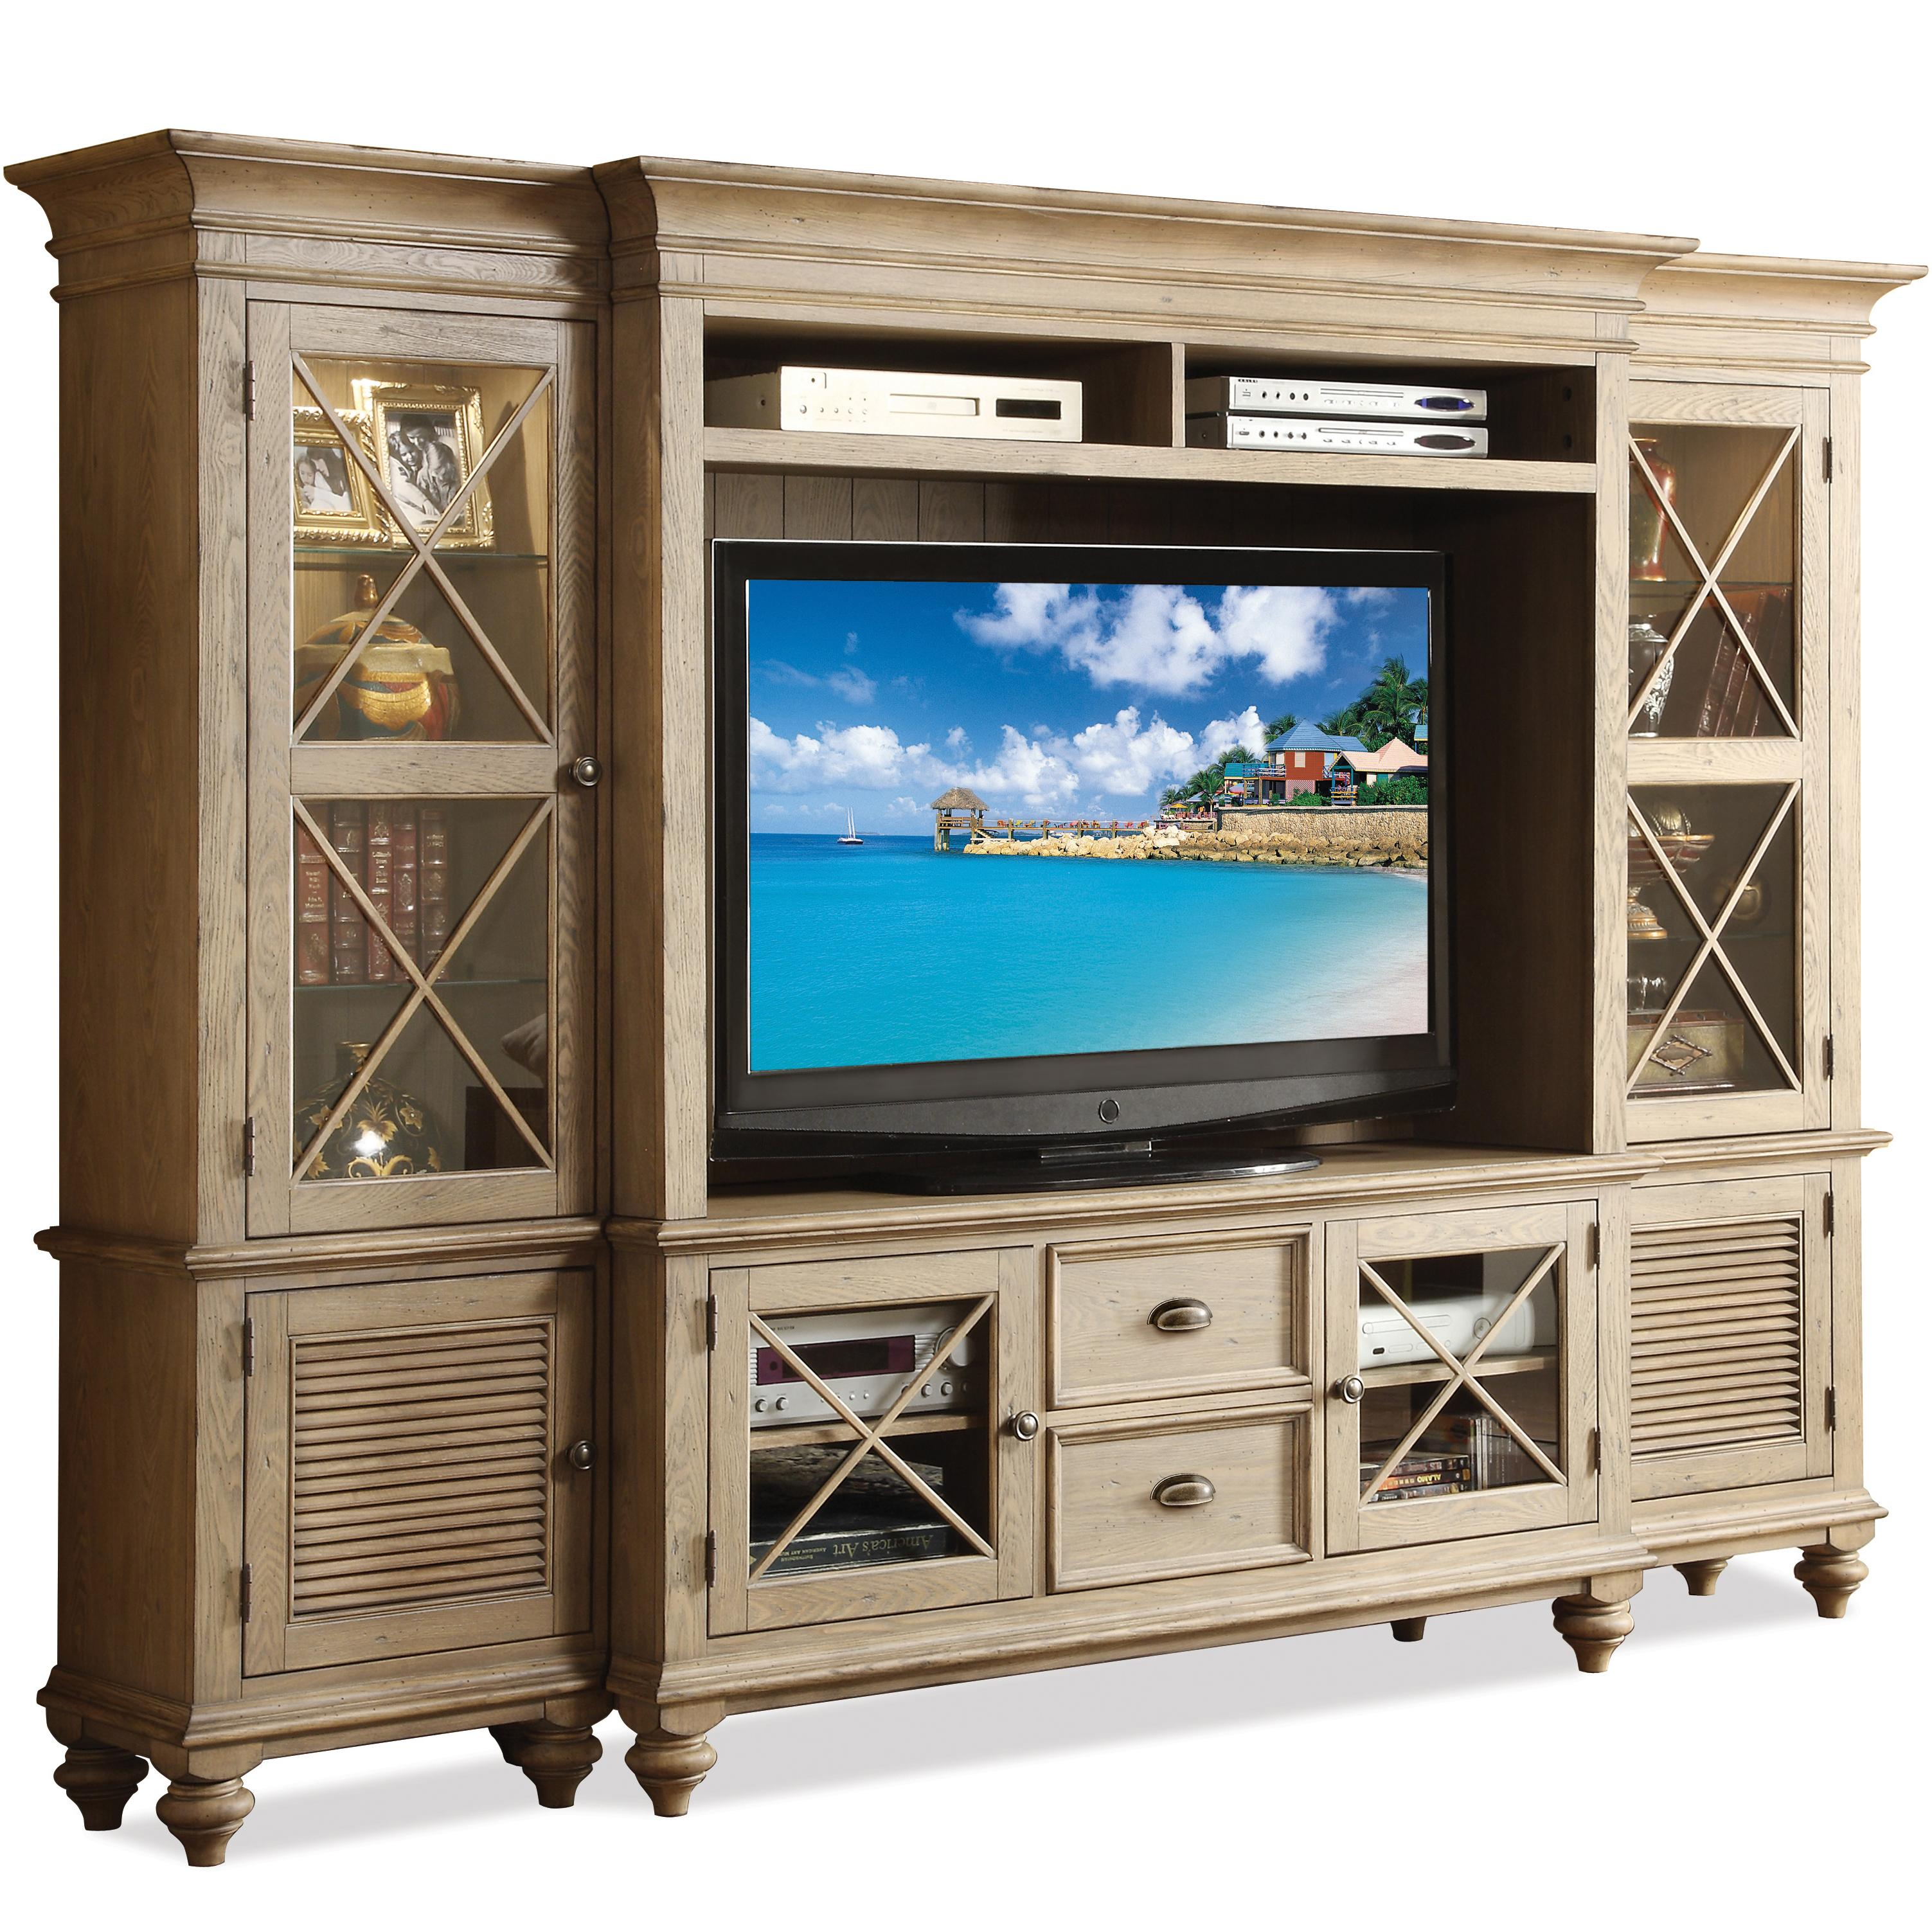 Riverside Furniture Coventry Wall System - Item Number: 32440+42+48+49